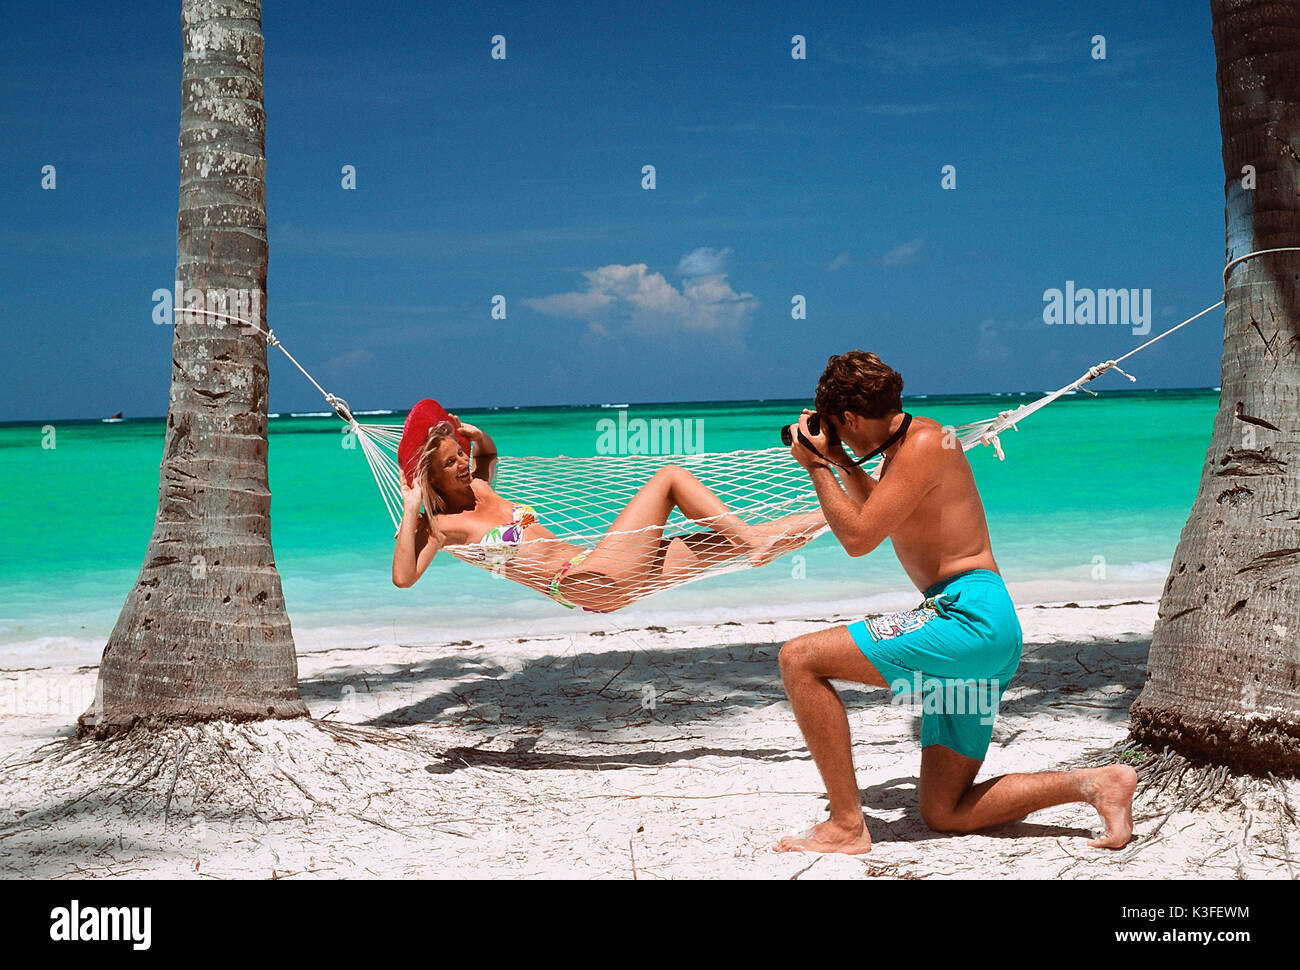 Man takes a photo of woman in hammock - Stock Image